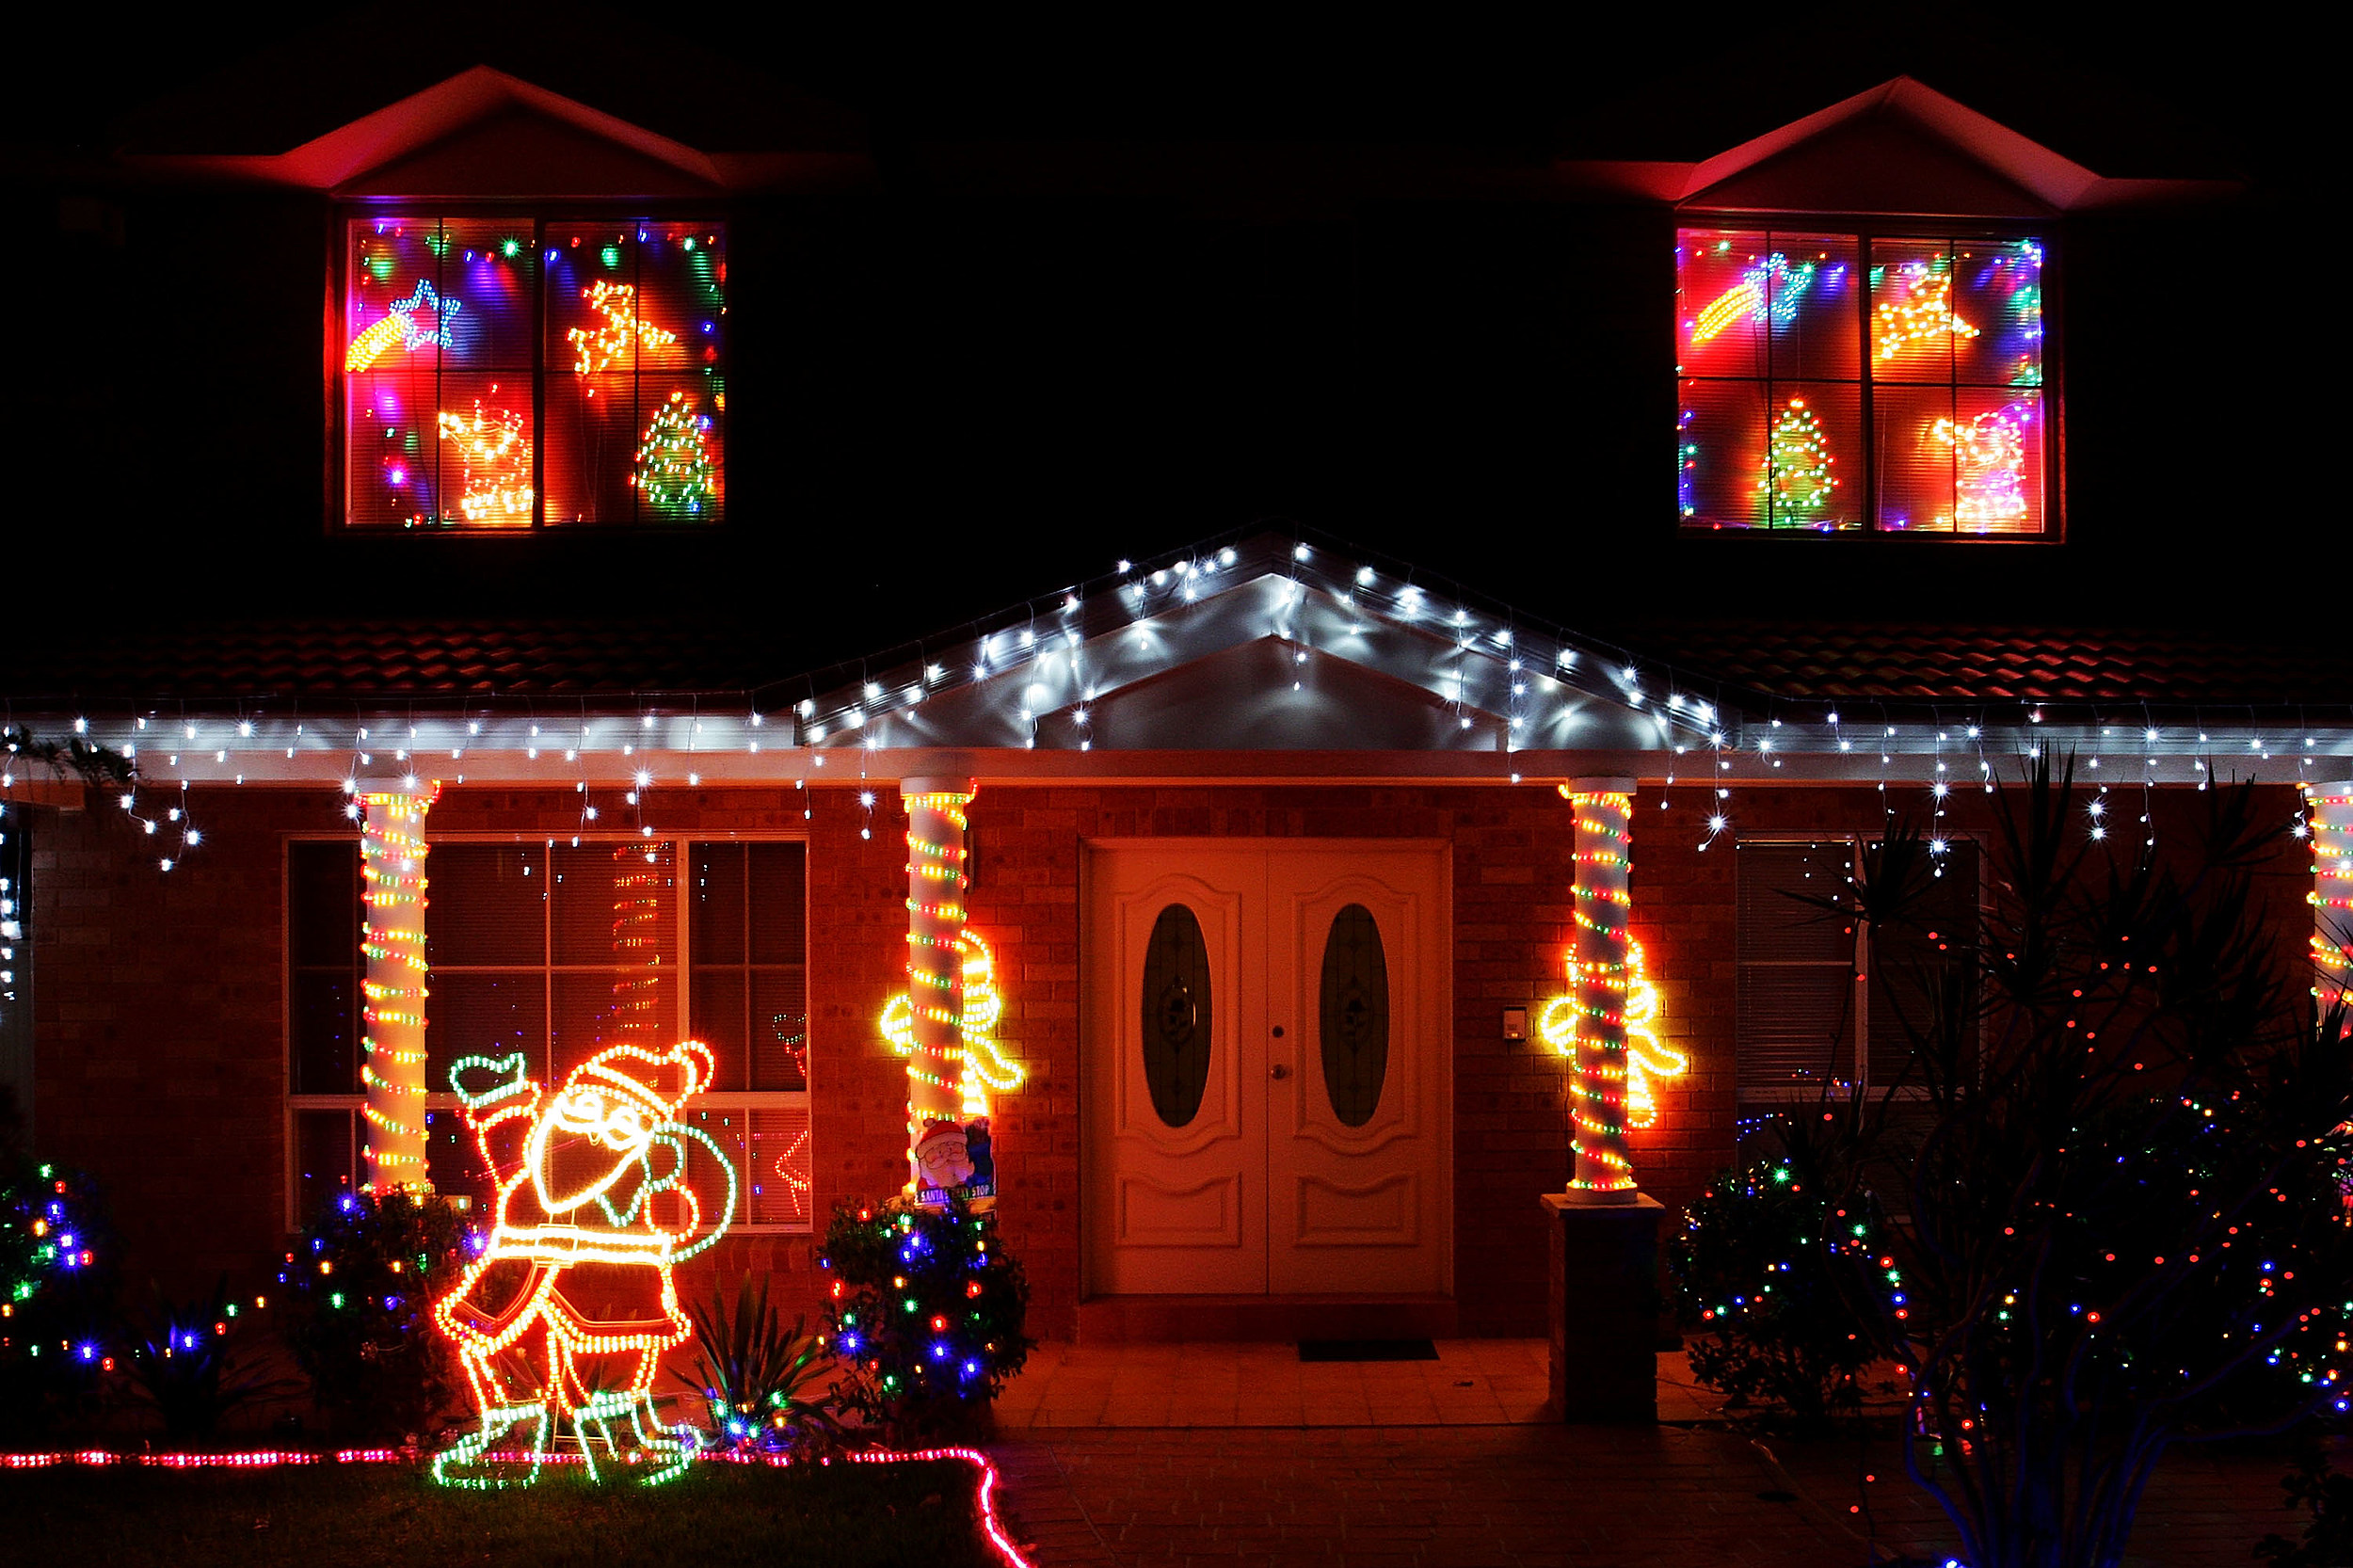 Check Out These Awesome Christmas Lights Displays In Tri Cities [VIDEO]